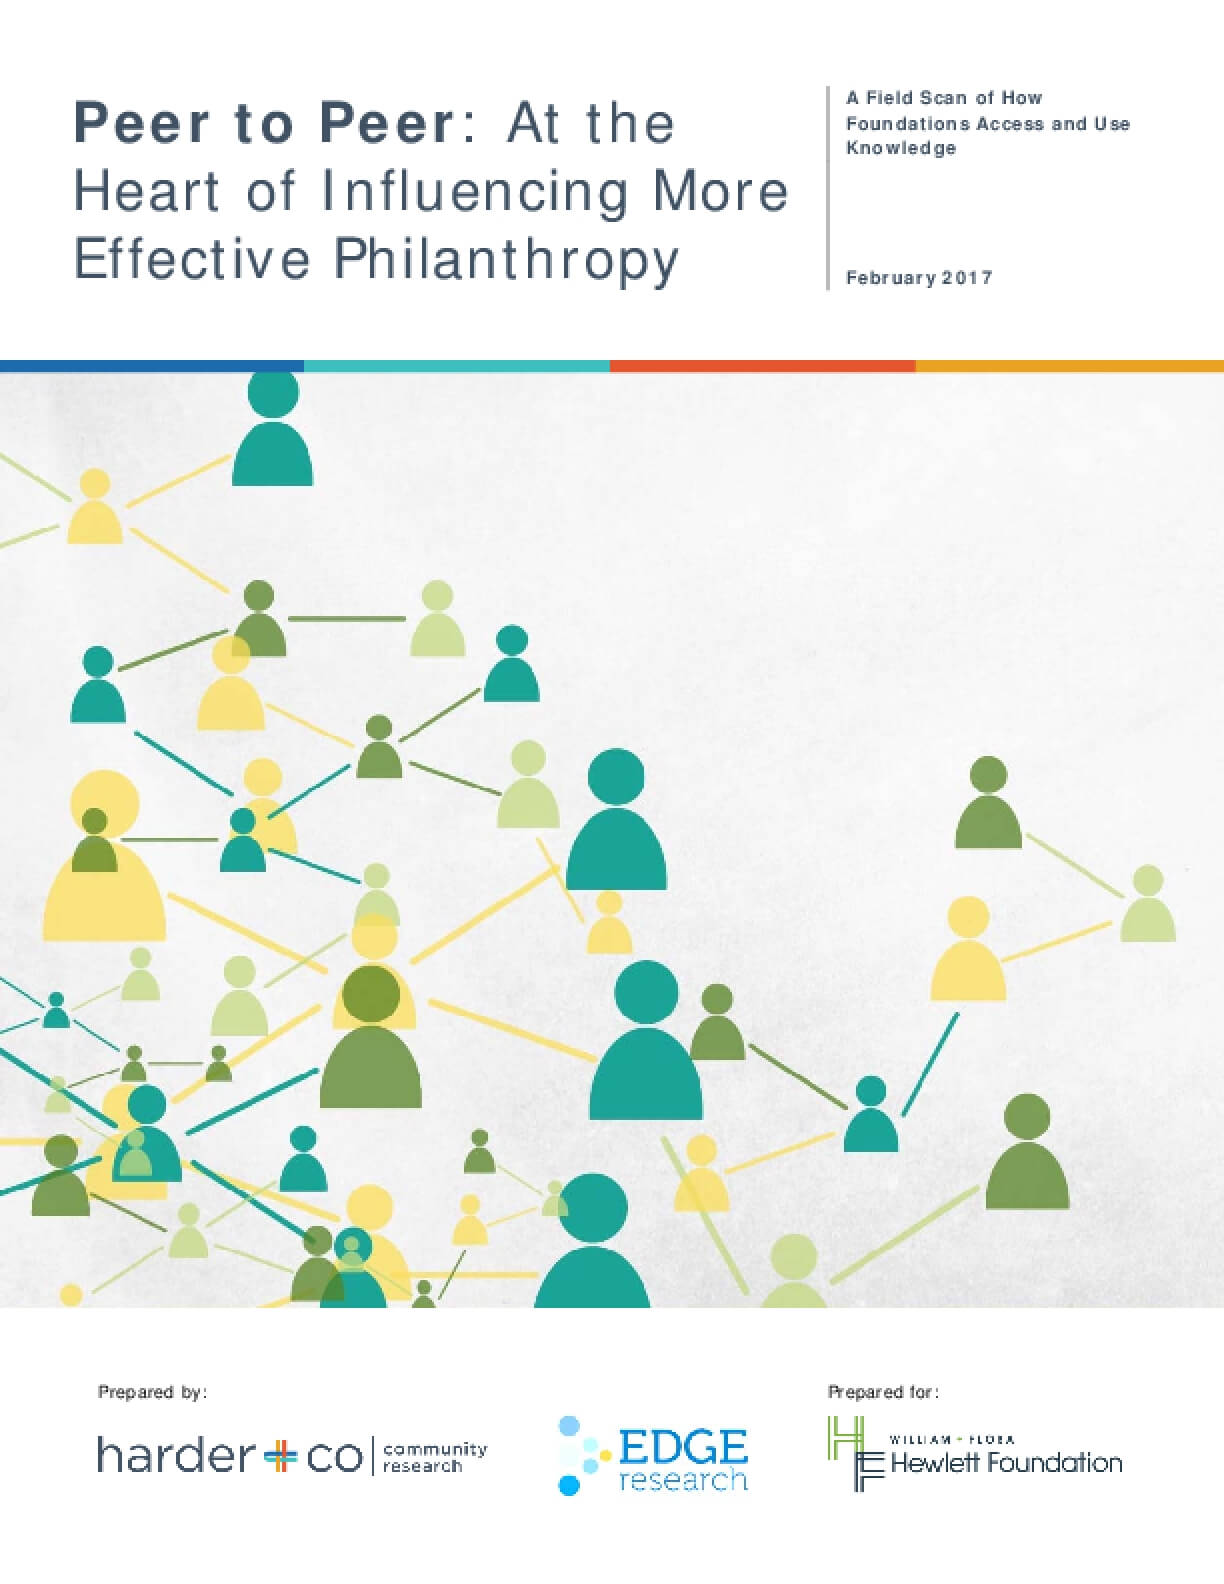 Peer to Peer: At the Heart of Influencing More Effective Philanthropy